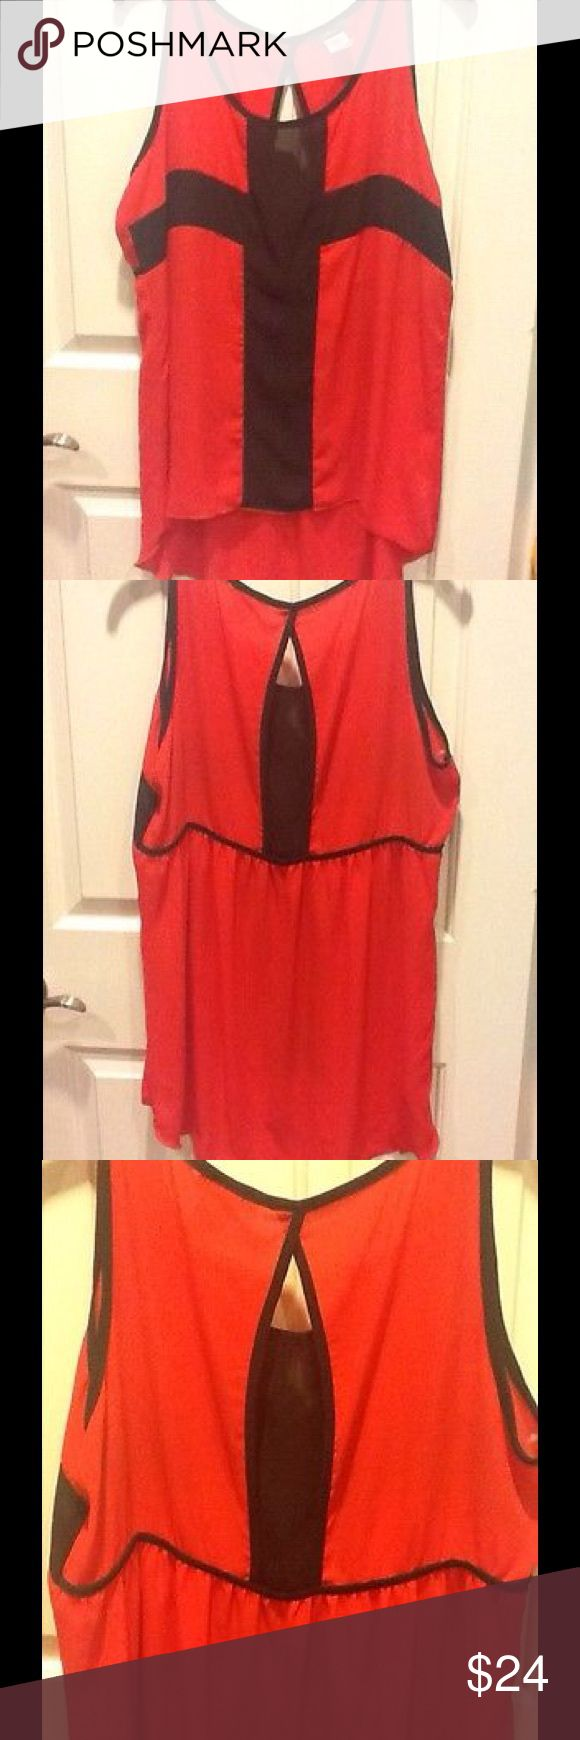 NWOT Plus Cross/Colorblock Tank/Top/Shirt~3XL NWOT Ladies Plus Red/Black Cross/Colorblock Sleeveless Tank/Top/Shirt~3XL ⚫️It is mostly solid, but in the front is has a black cross-like design or could be considered colorblock.🔴The back is an elongated like open keyhole shape!⚫️This also has a high-low hem. 🔴can be dressed up or paired w/ denim; beautiful w/ a denim cropped jacket/shrug/cardigan for cooler months & solo for the warmer months! ⚫️purchased in a boutique & was pricey & rare…